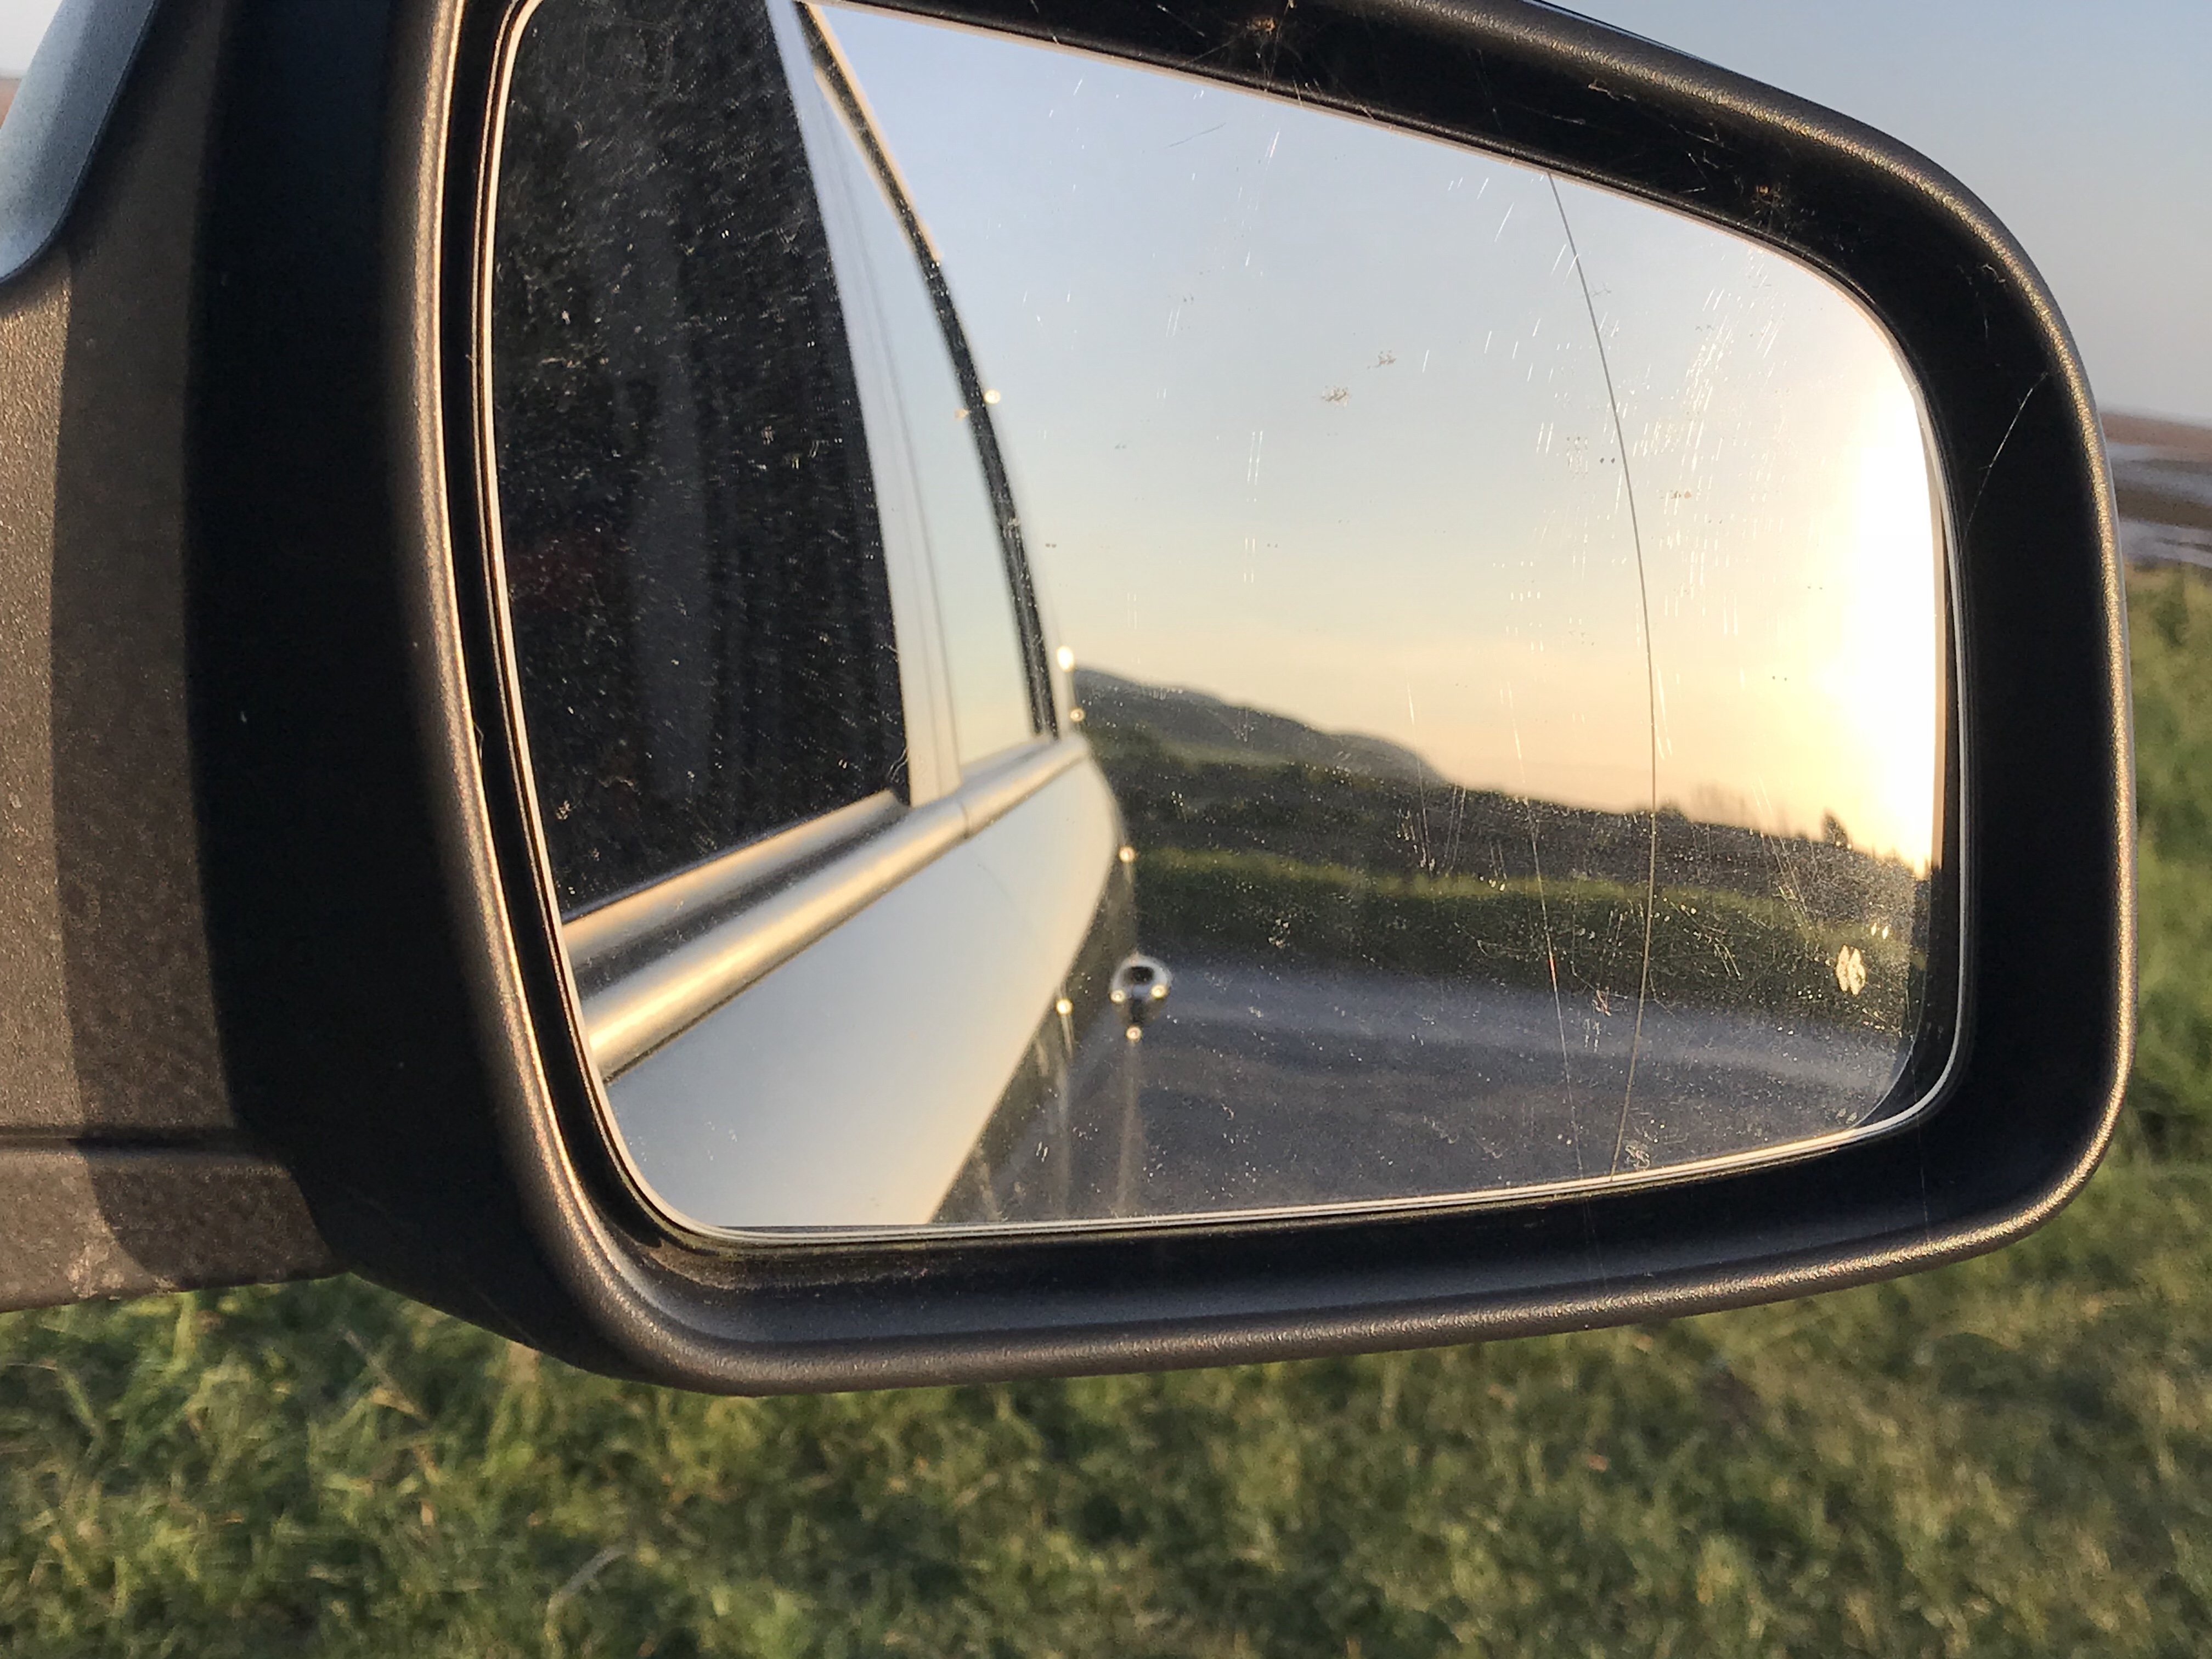 #MySundayPhoto - Take A Look In The Mirror